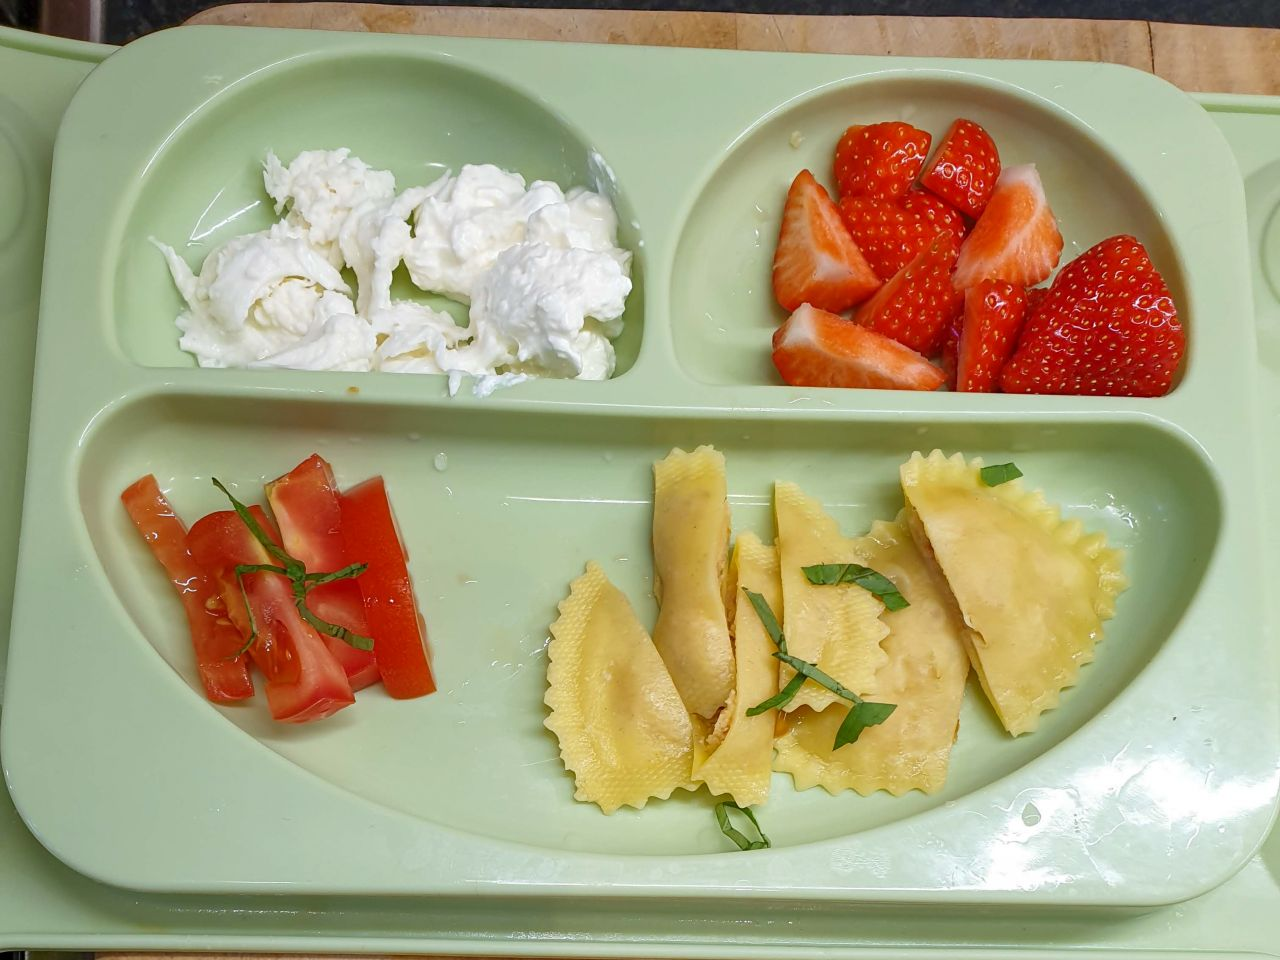 baby led weaning meal - filled pasta with tomatoes, mozzarella and strawberries